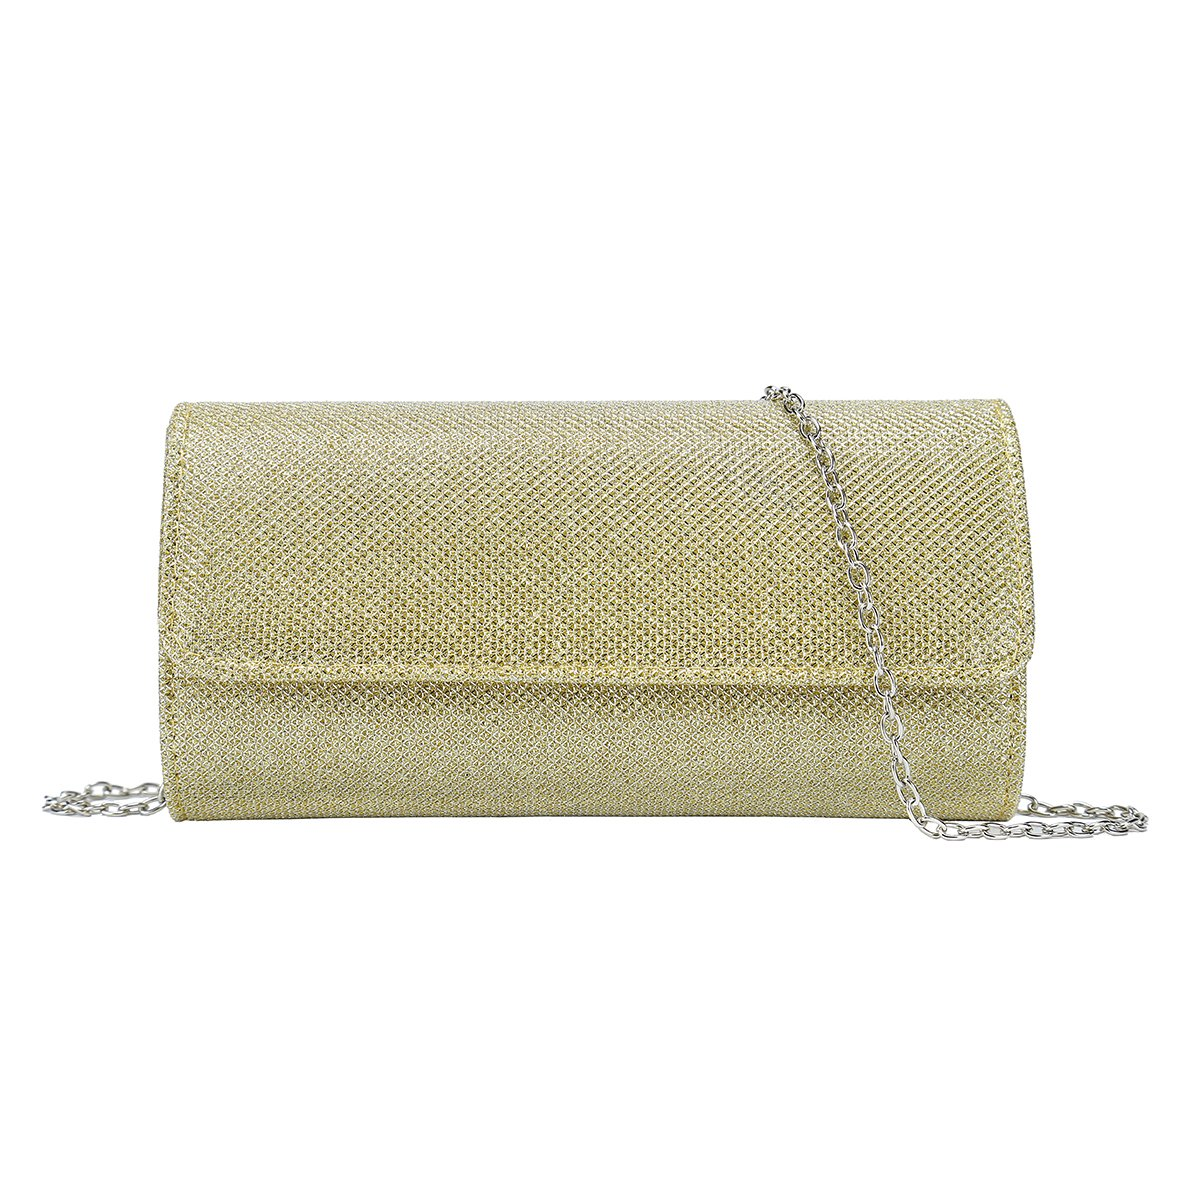 Charming Tailor Clutch Evening Bag on Chain Glitter Fashion Purses and Handbags for Women (Gold)